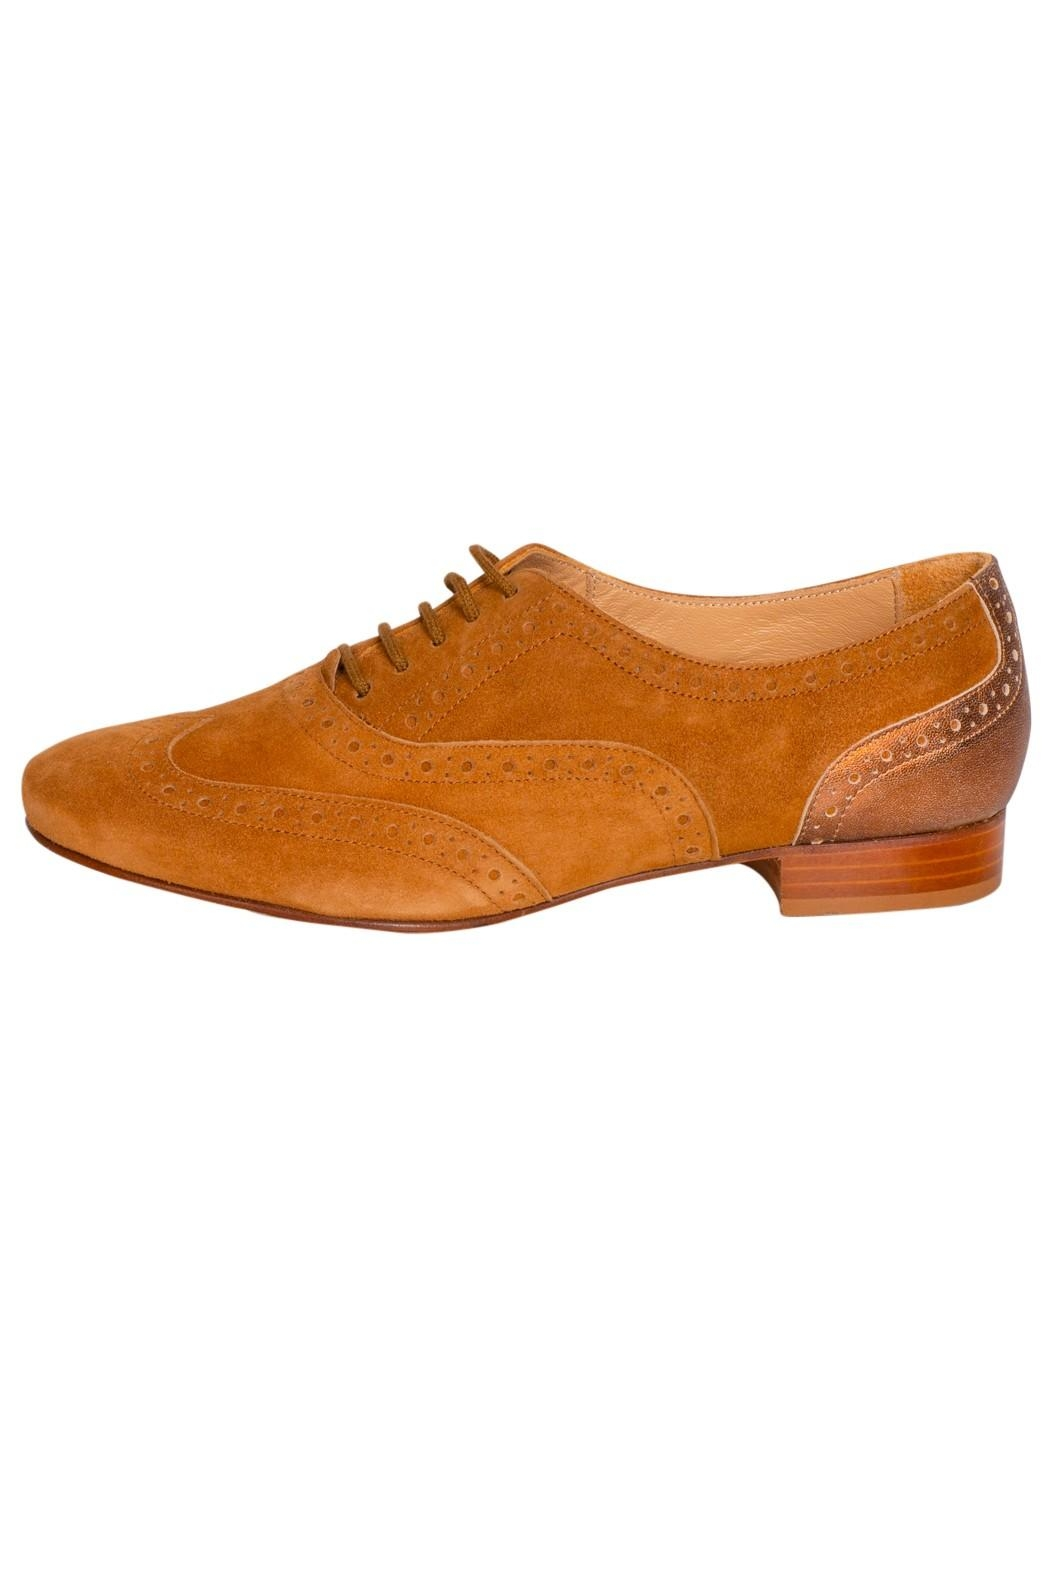 Pascucci Tan Suede Brogues - Main Image